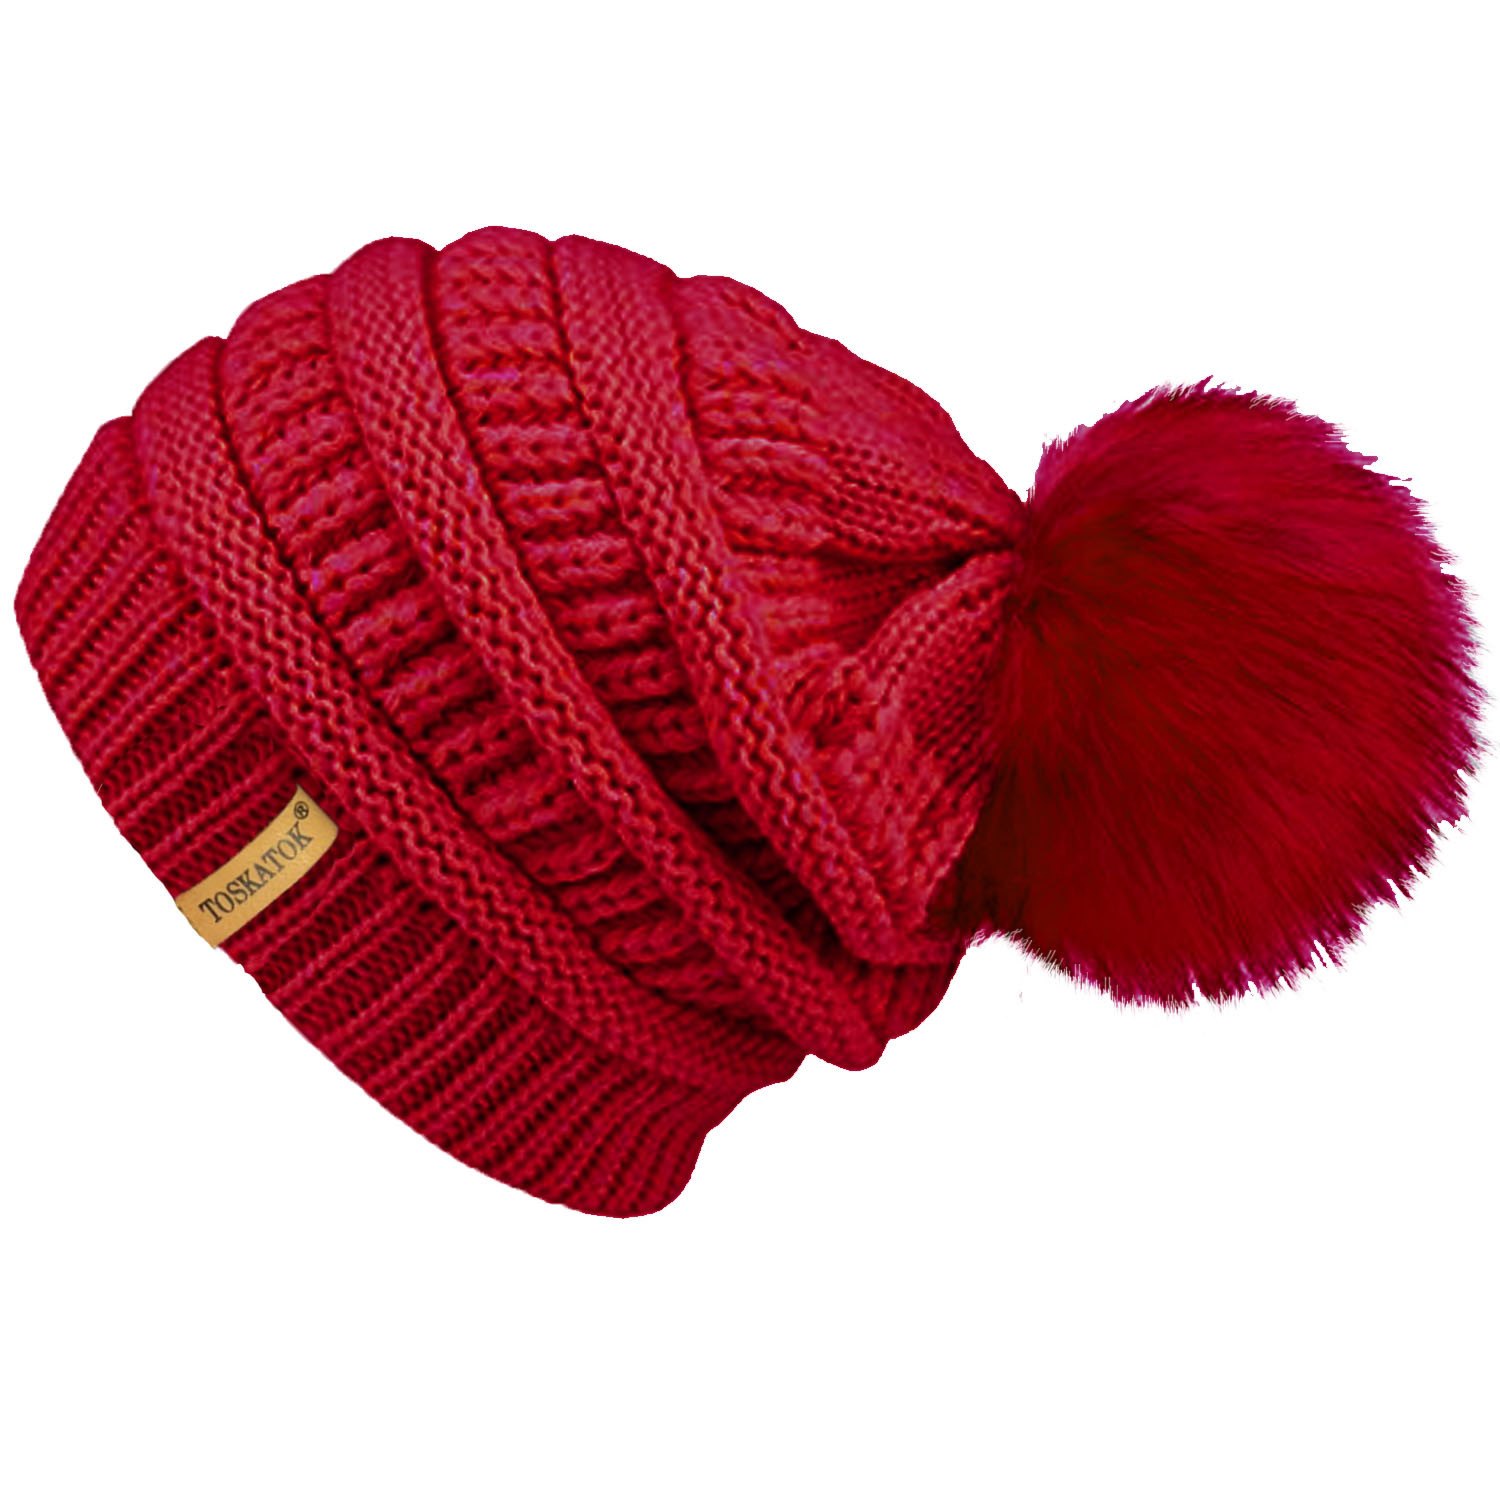 Womens Knit Hats Lovely Ladies Womens Winter Textured Knit Beanie Bobble Hat Of Innovative 50 Images Womens Knit Hats